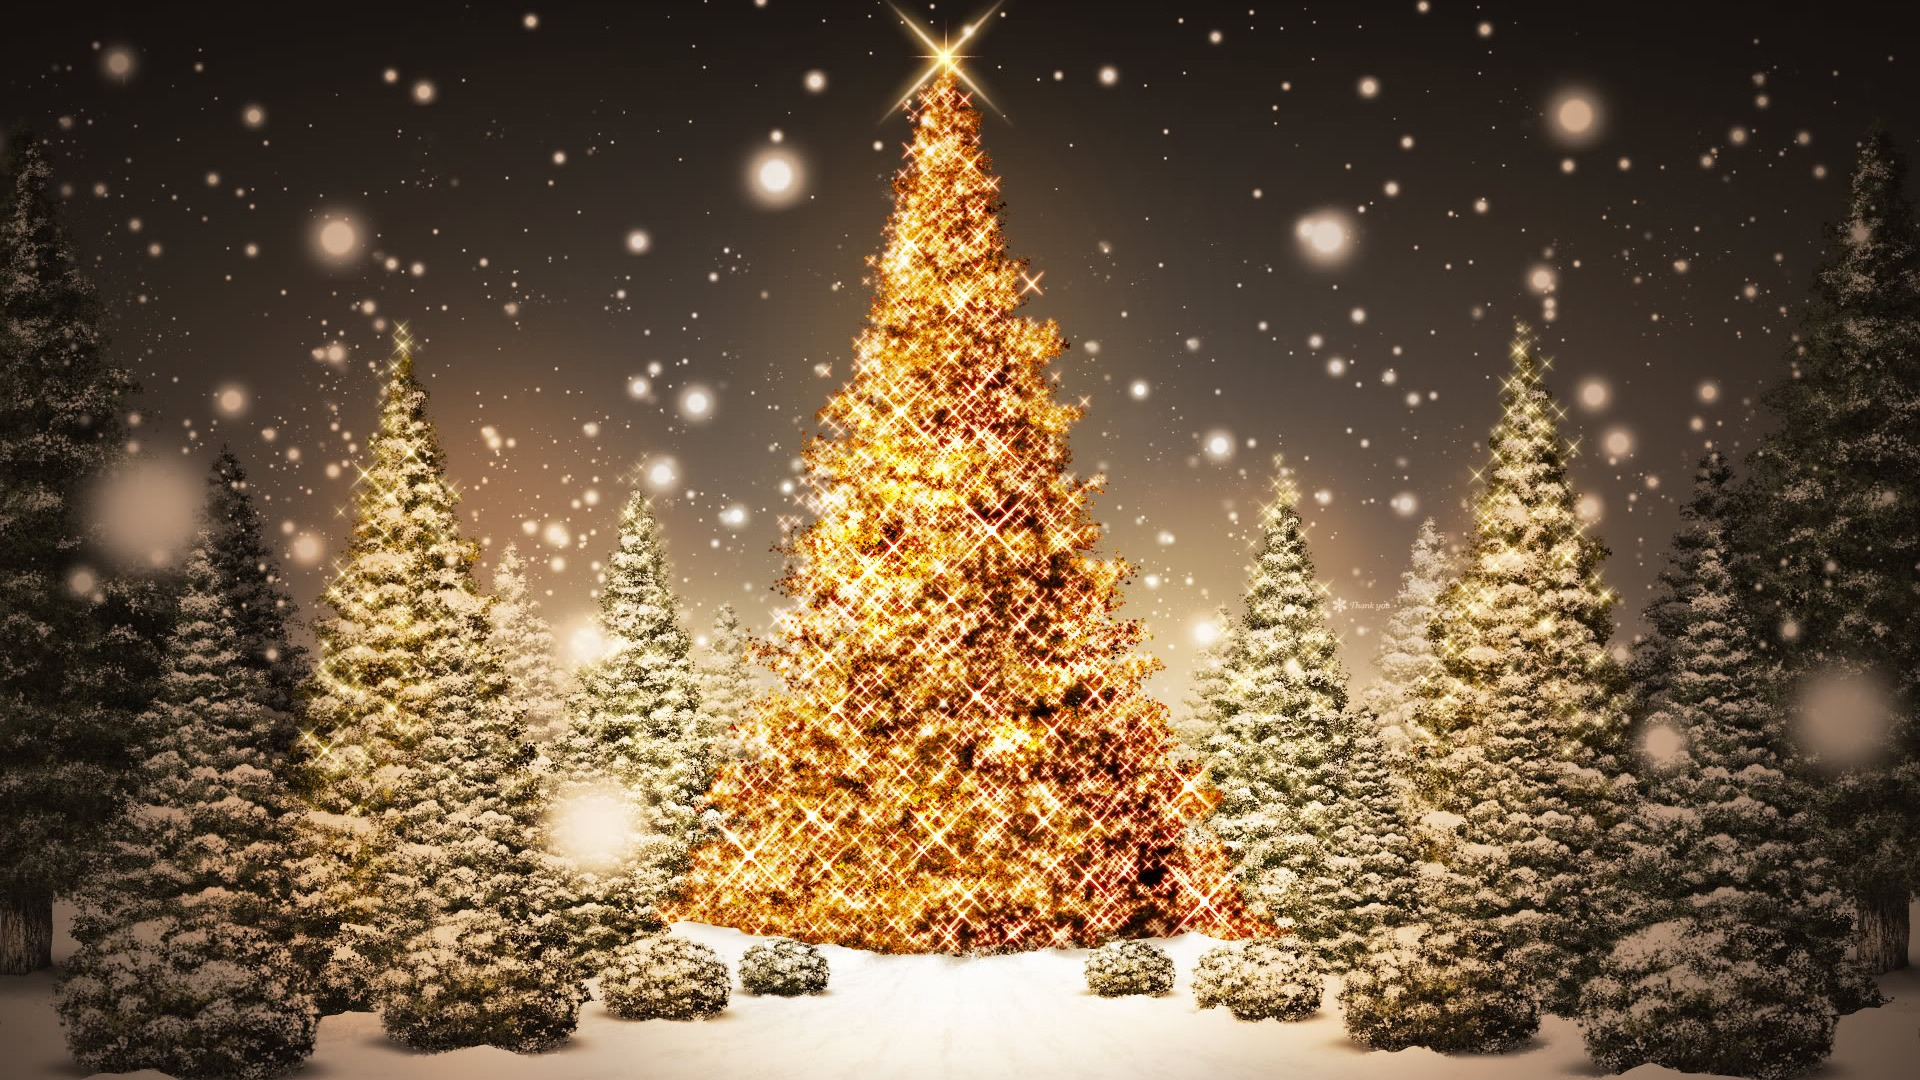 Christmas Trees Light Desktop Wallpaper